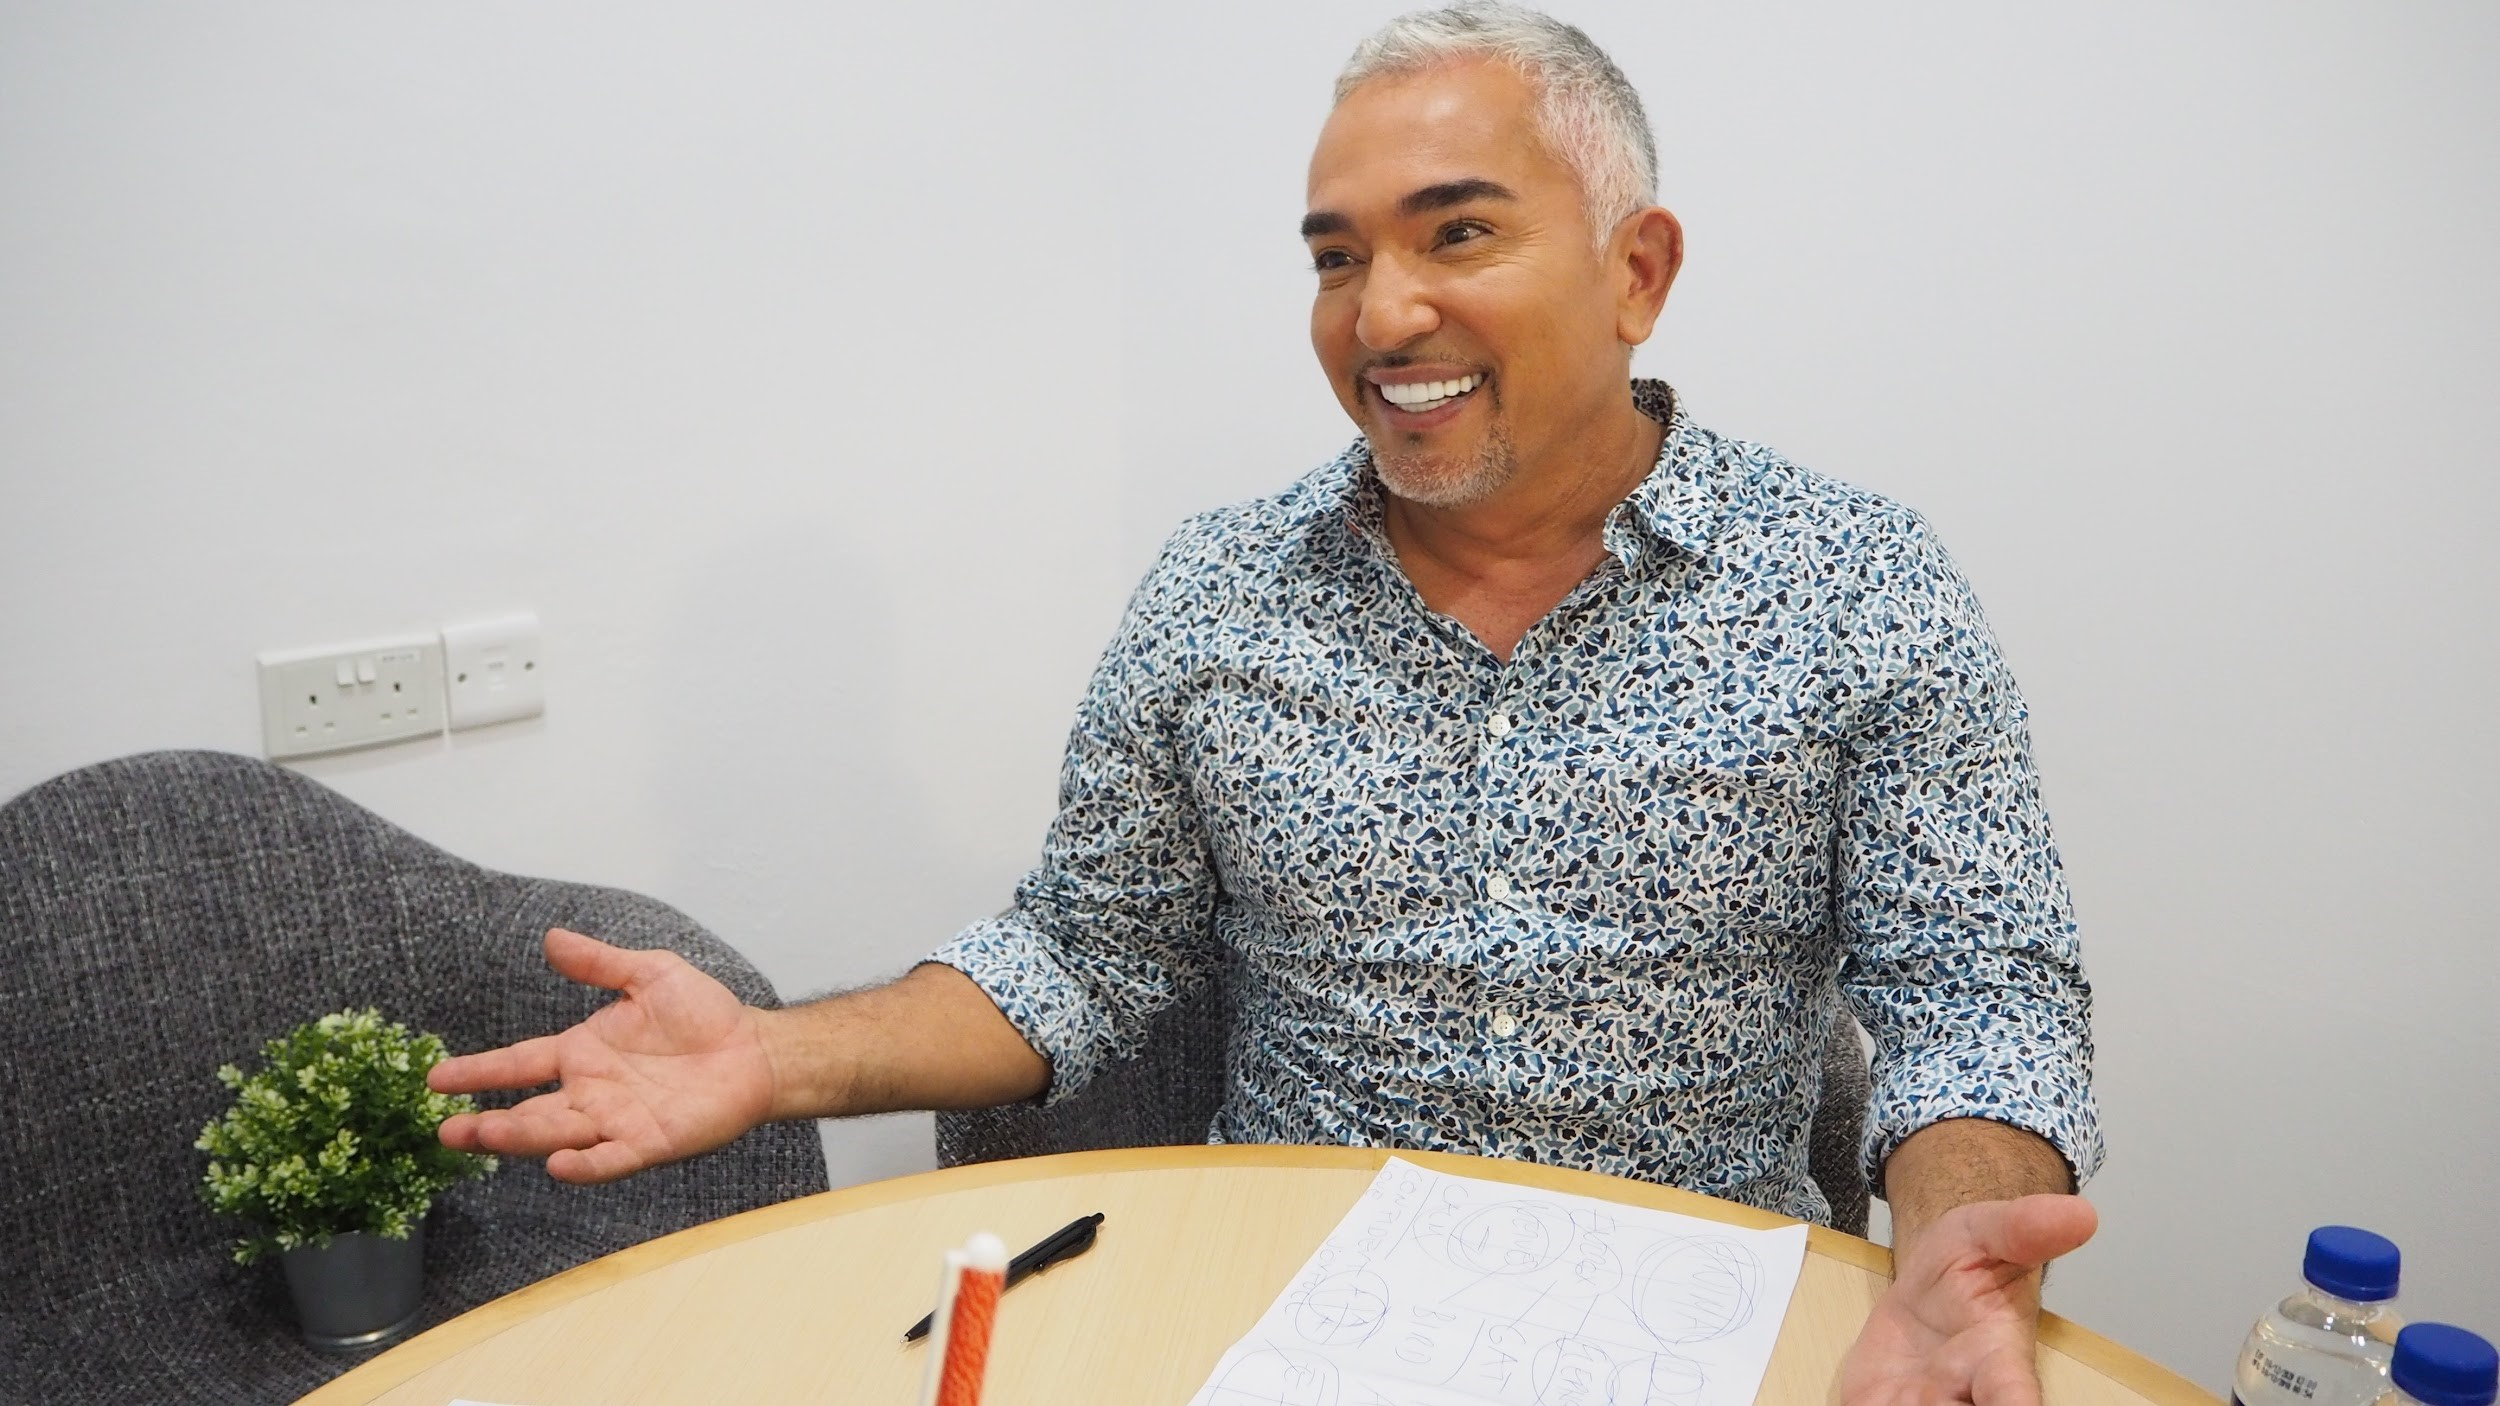 Dog Whisperer Cesar Millan Is on the Hunt for His Latest Recruit in Singapore